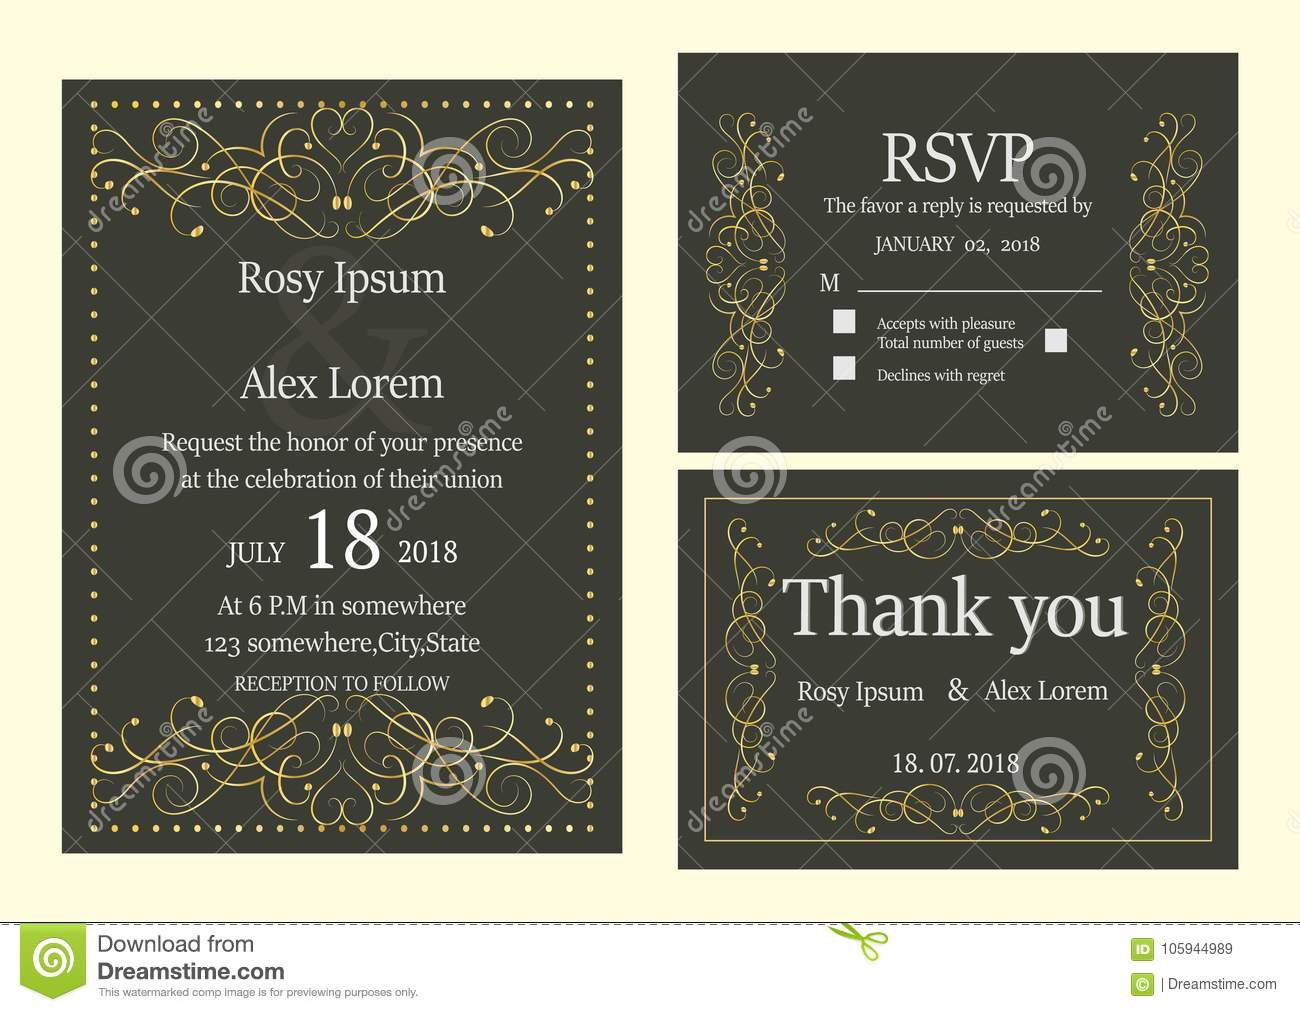 wedding invitation save the date rsvp card thank you card t